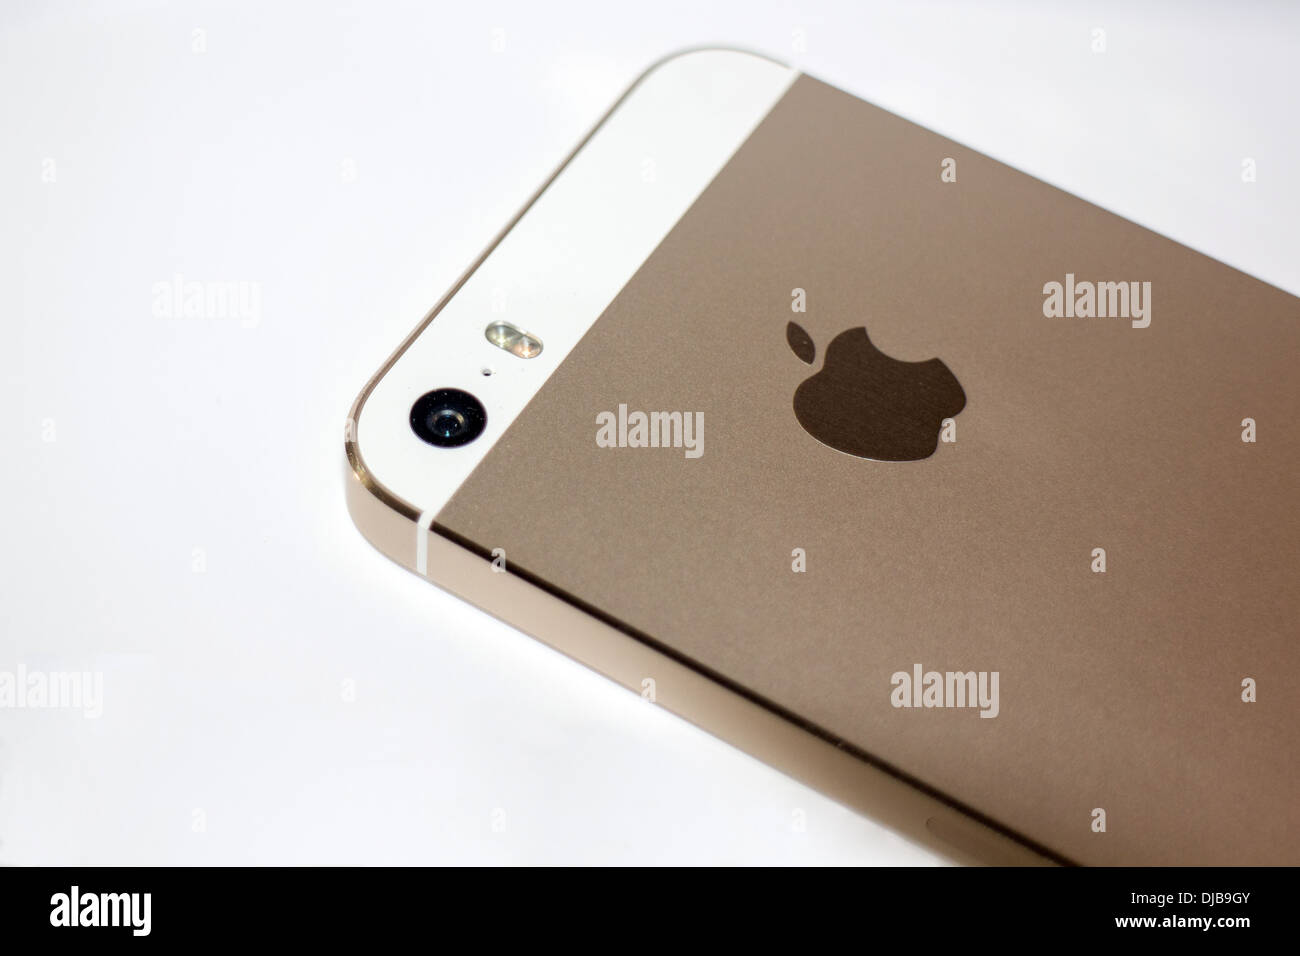 iPhone 6 said to feature 8MP camera again with improved image ...